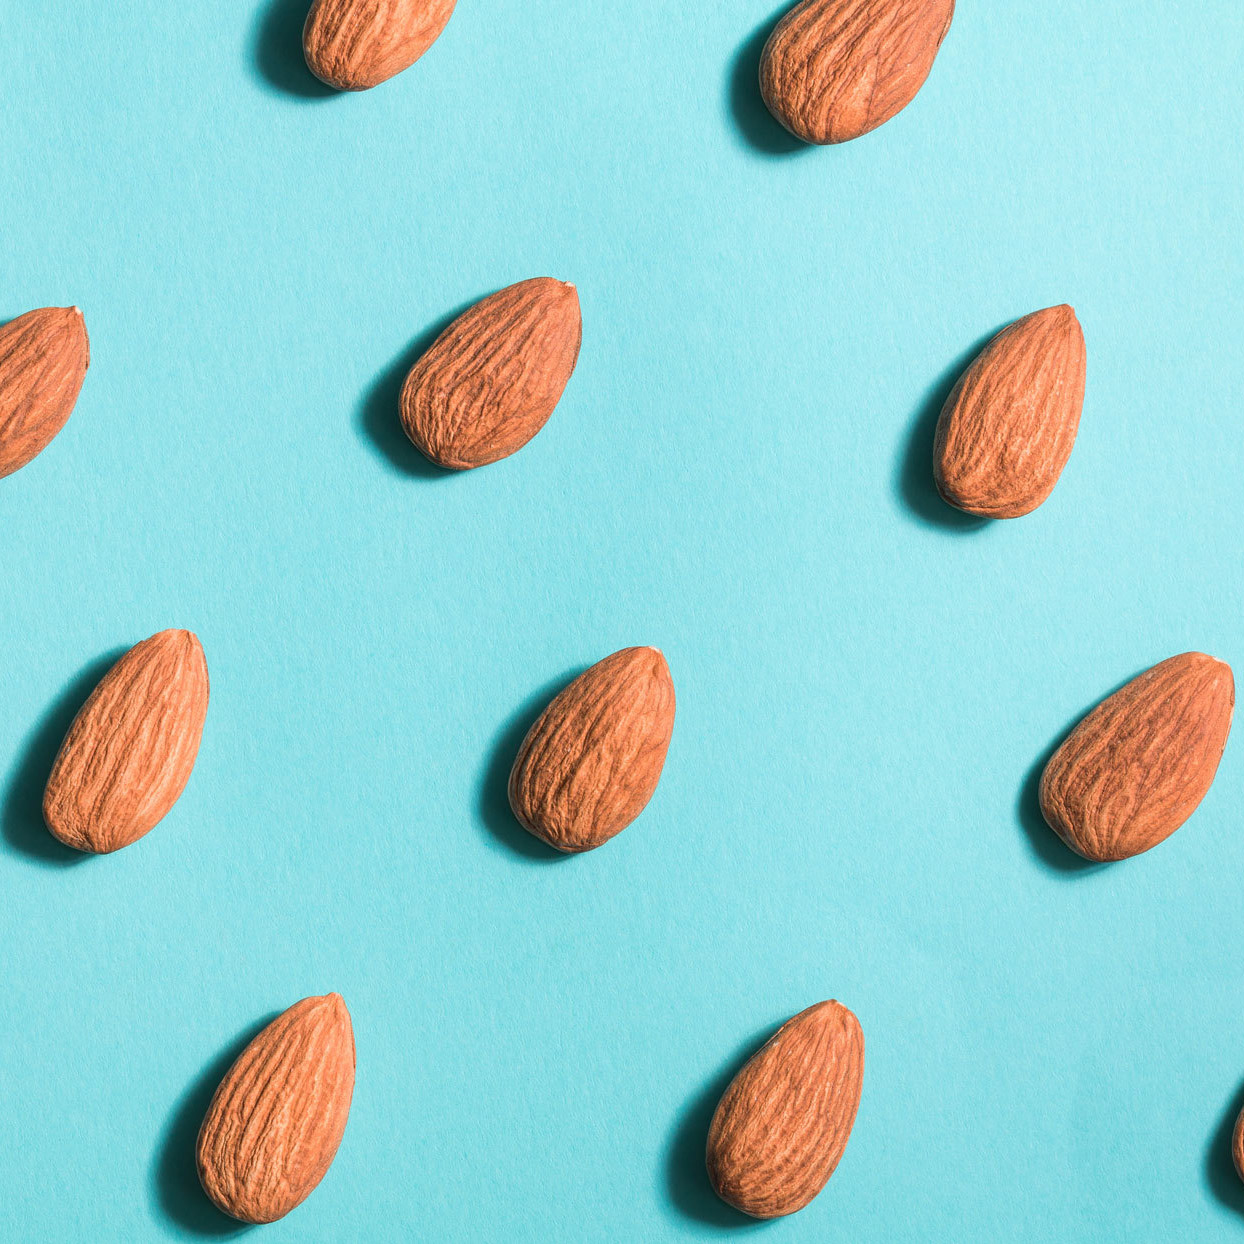 Are Almonds As Healthy As You Think They Are?